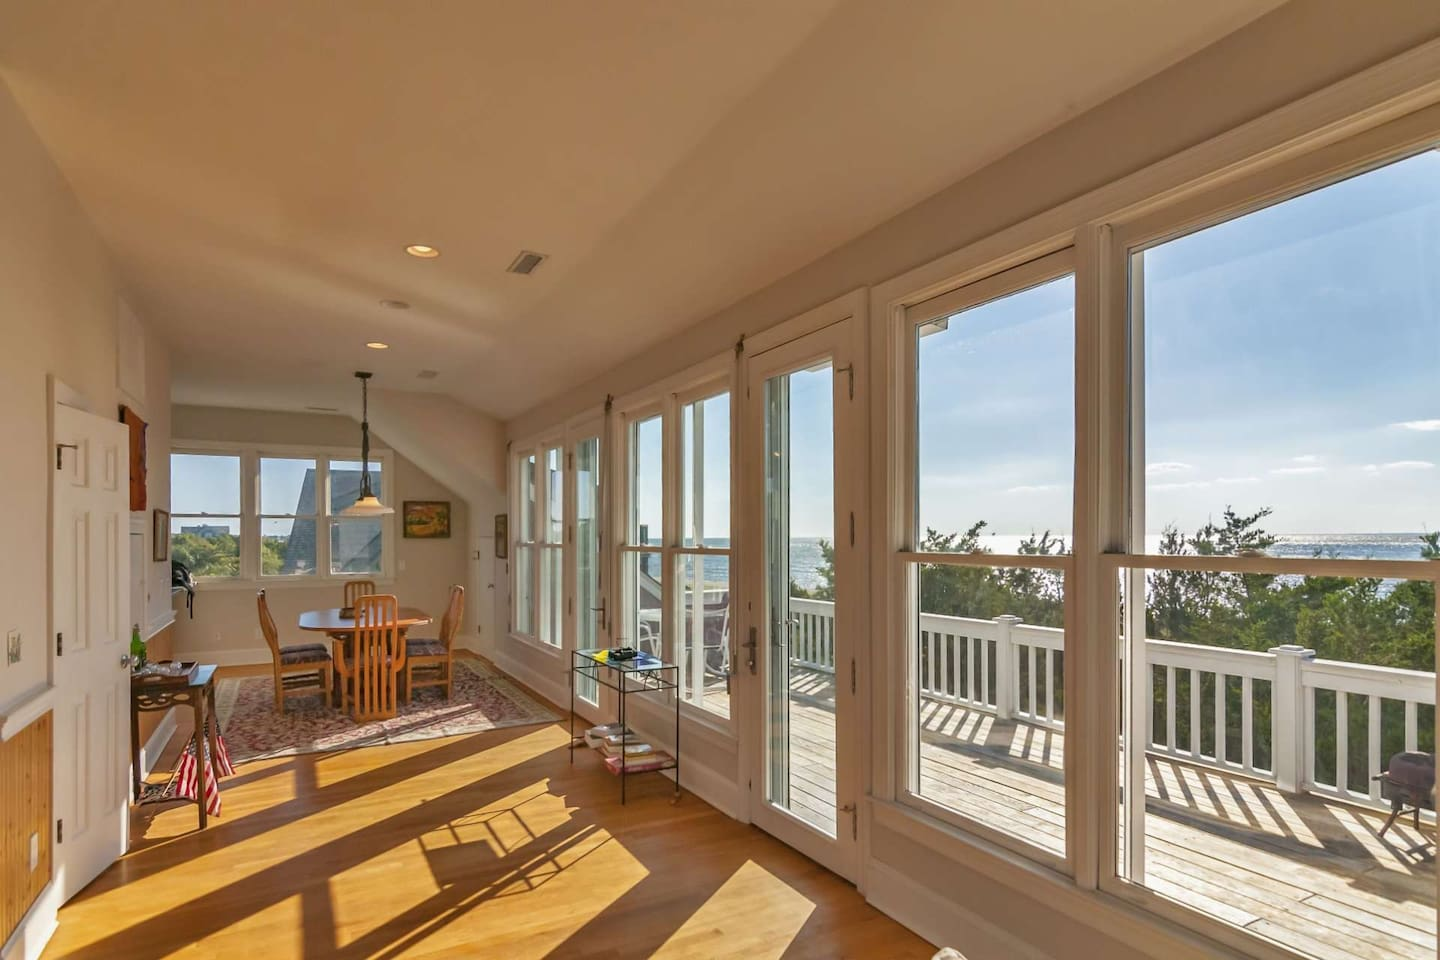 With over 60 windows you will enjoy views of the ocean, old baldy, the marsh and Bald Head Shoals